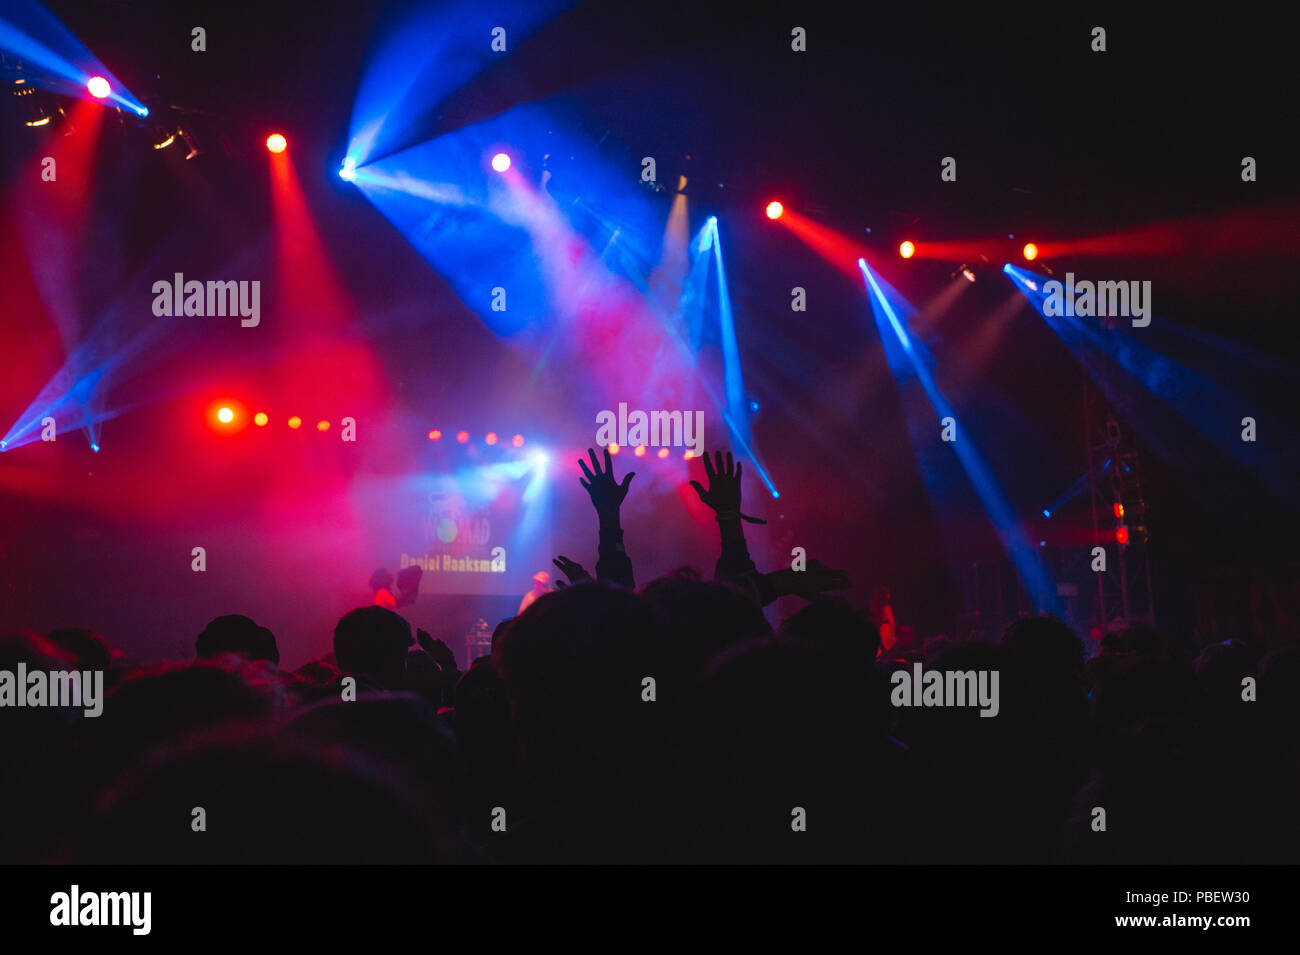 Rave Party Tent Stock Photos & Rave Party Tent Stock Images